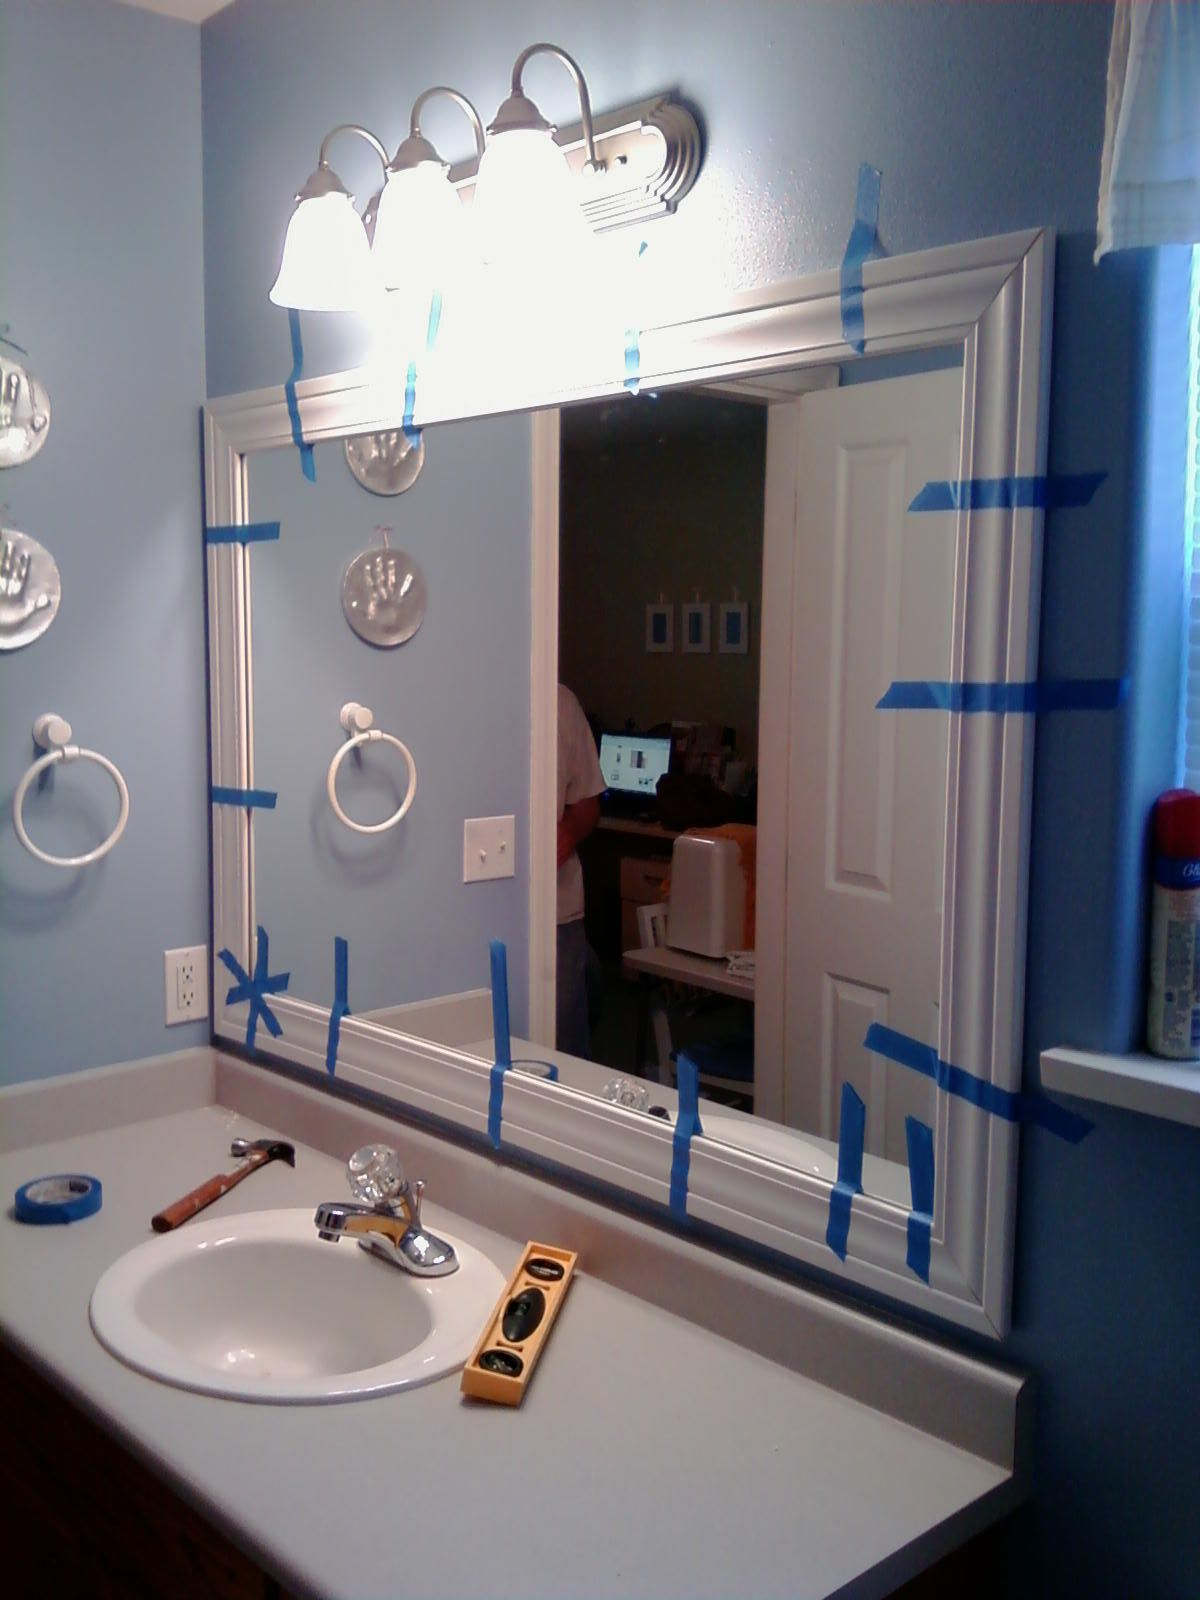 best 25 framed bathroom mirrors ideas on pinterest framing a mirror interior framed mirrors and bathroom fixture parts